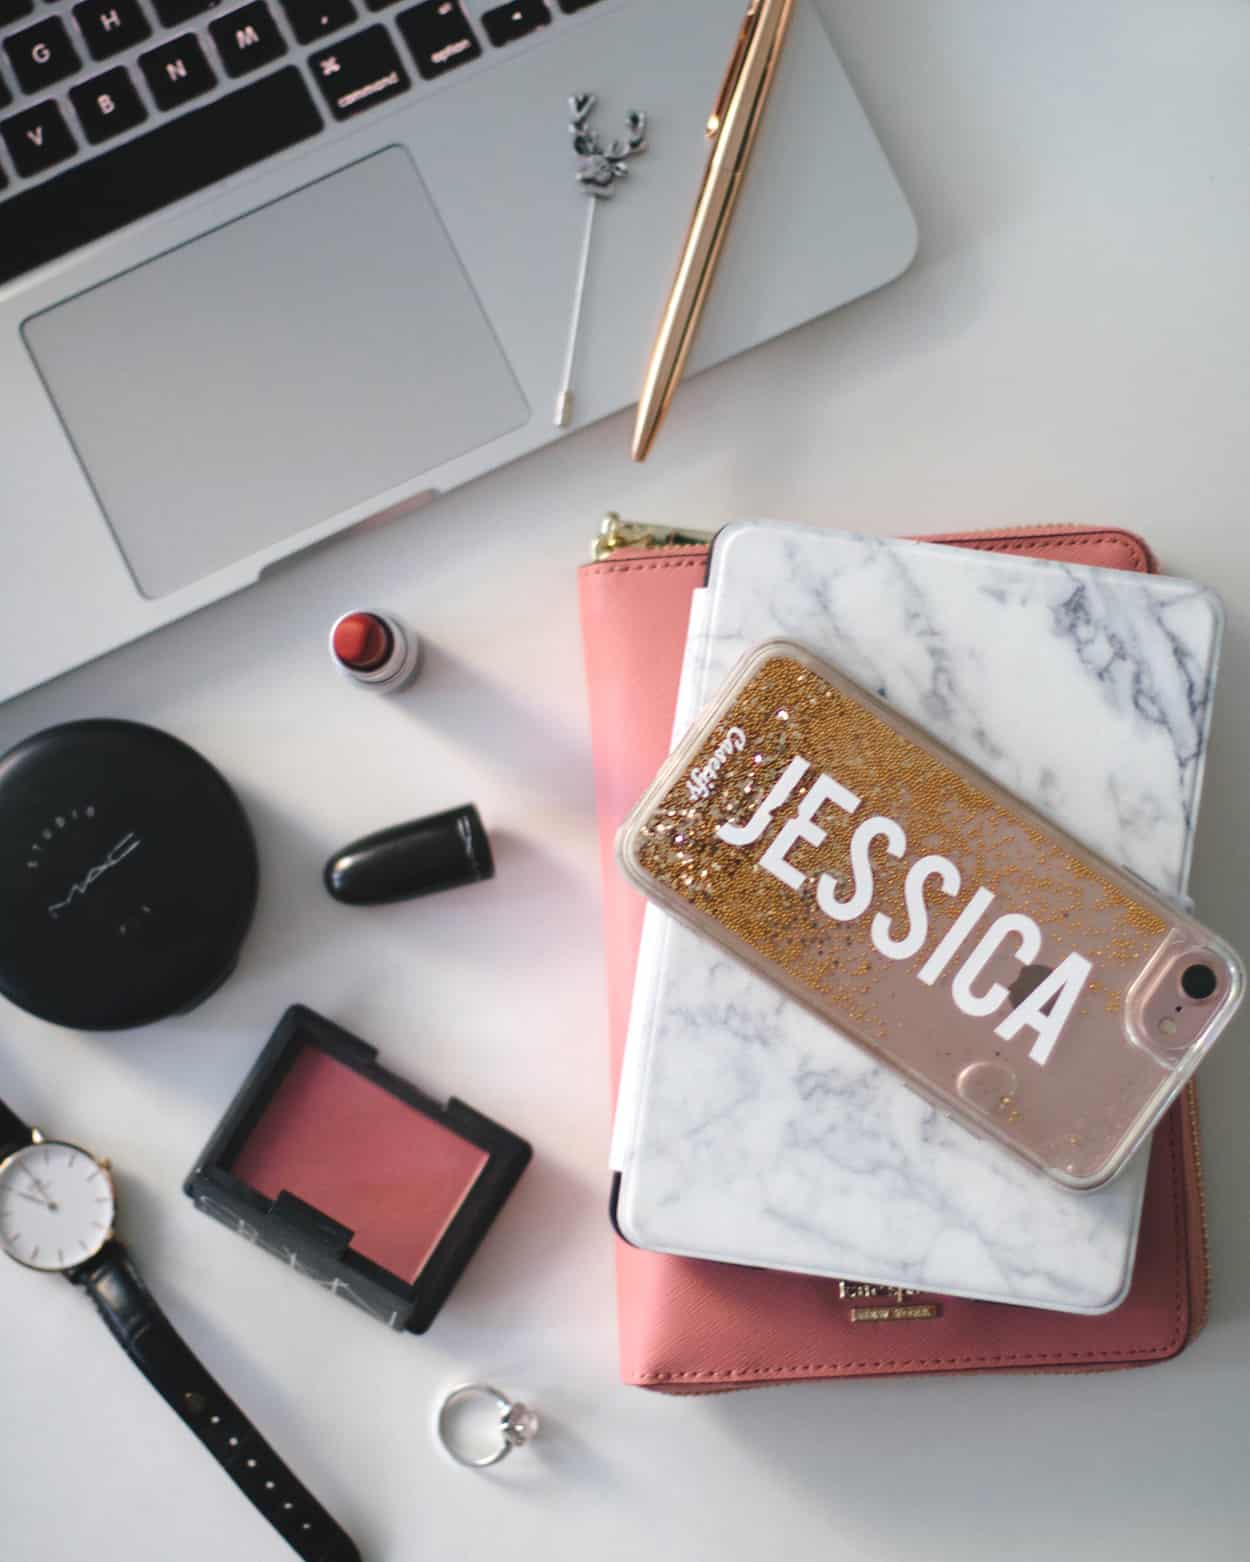 Work flat lay with laptop, phone, Kindle, planner, and beauty products